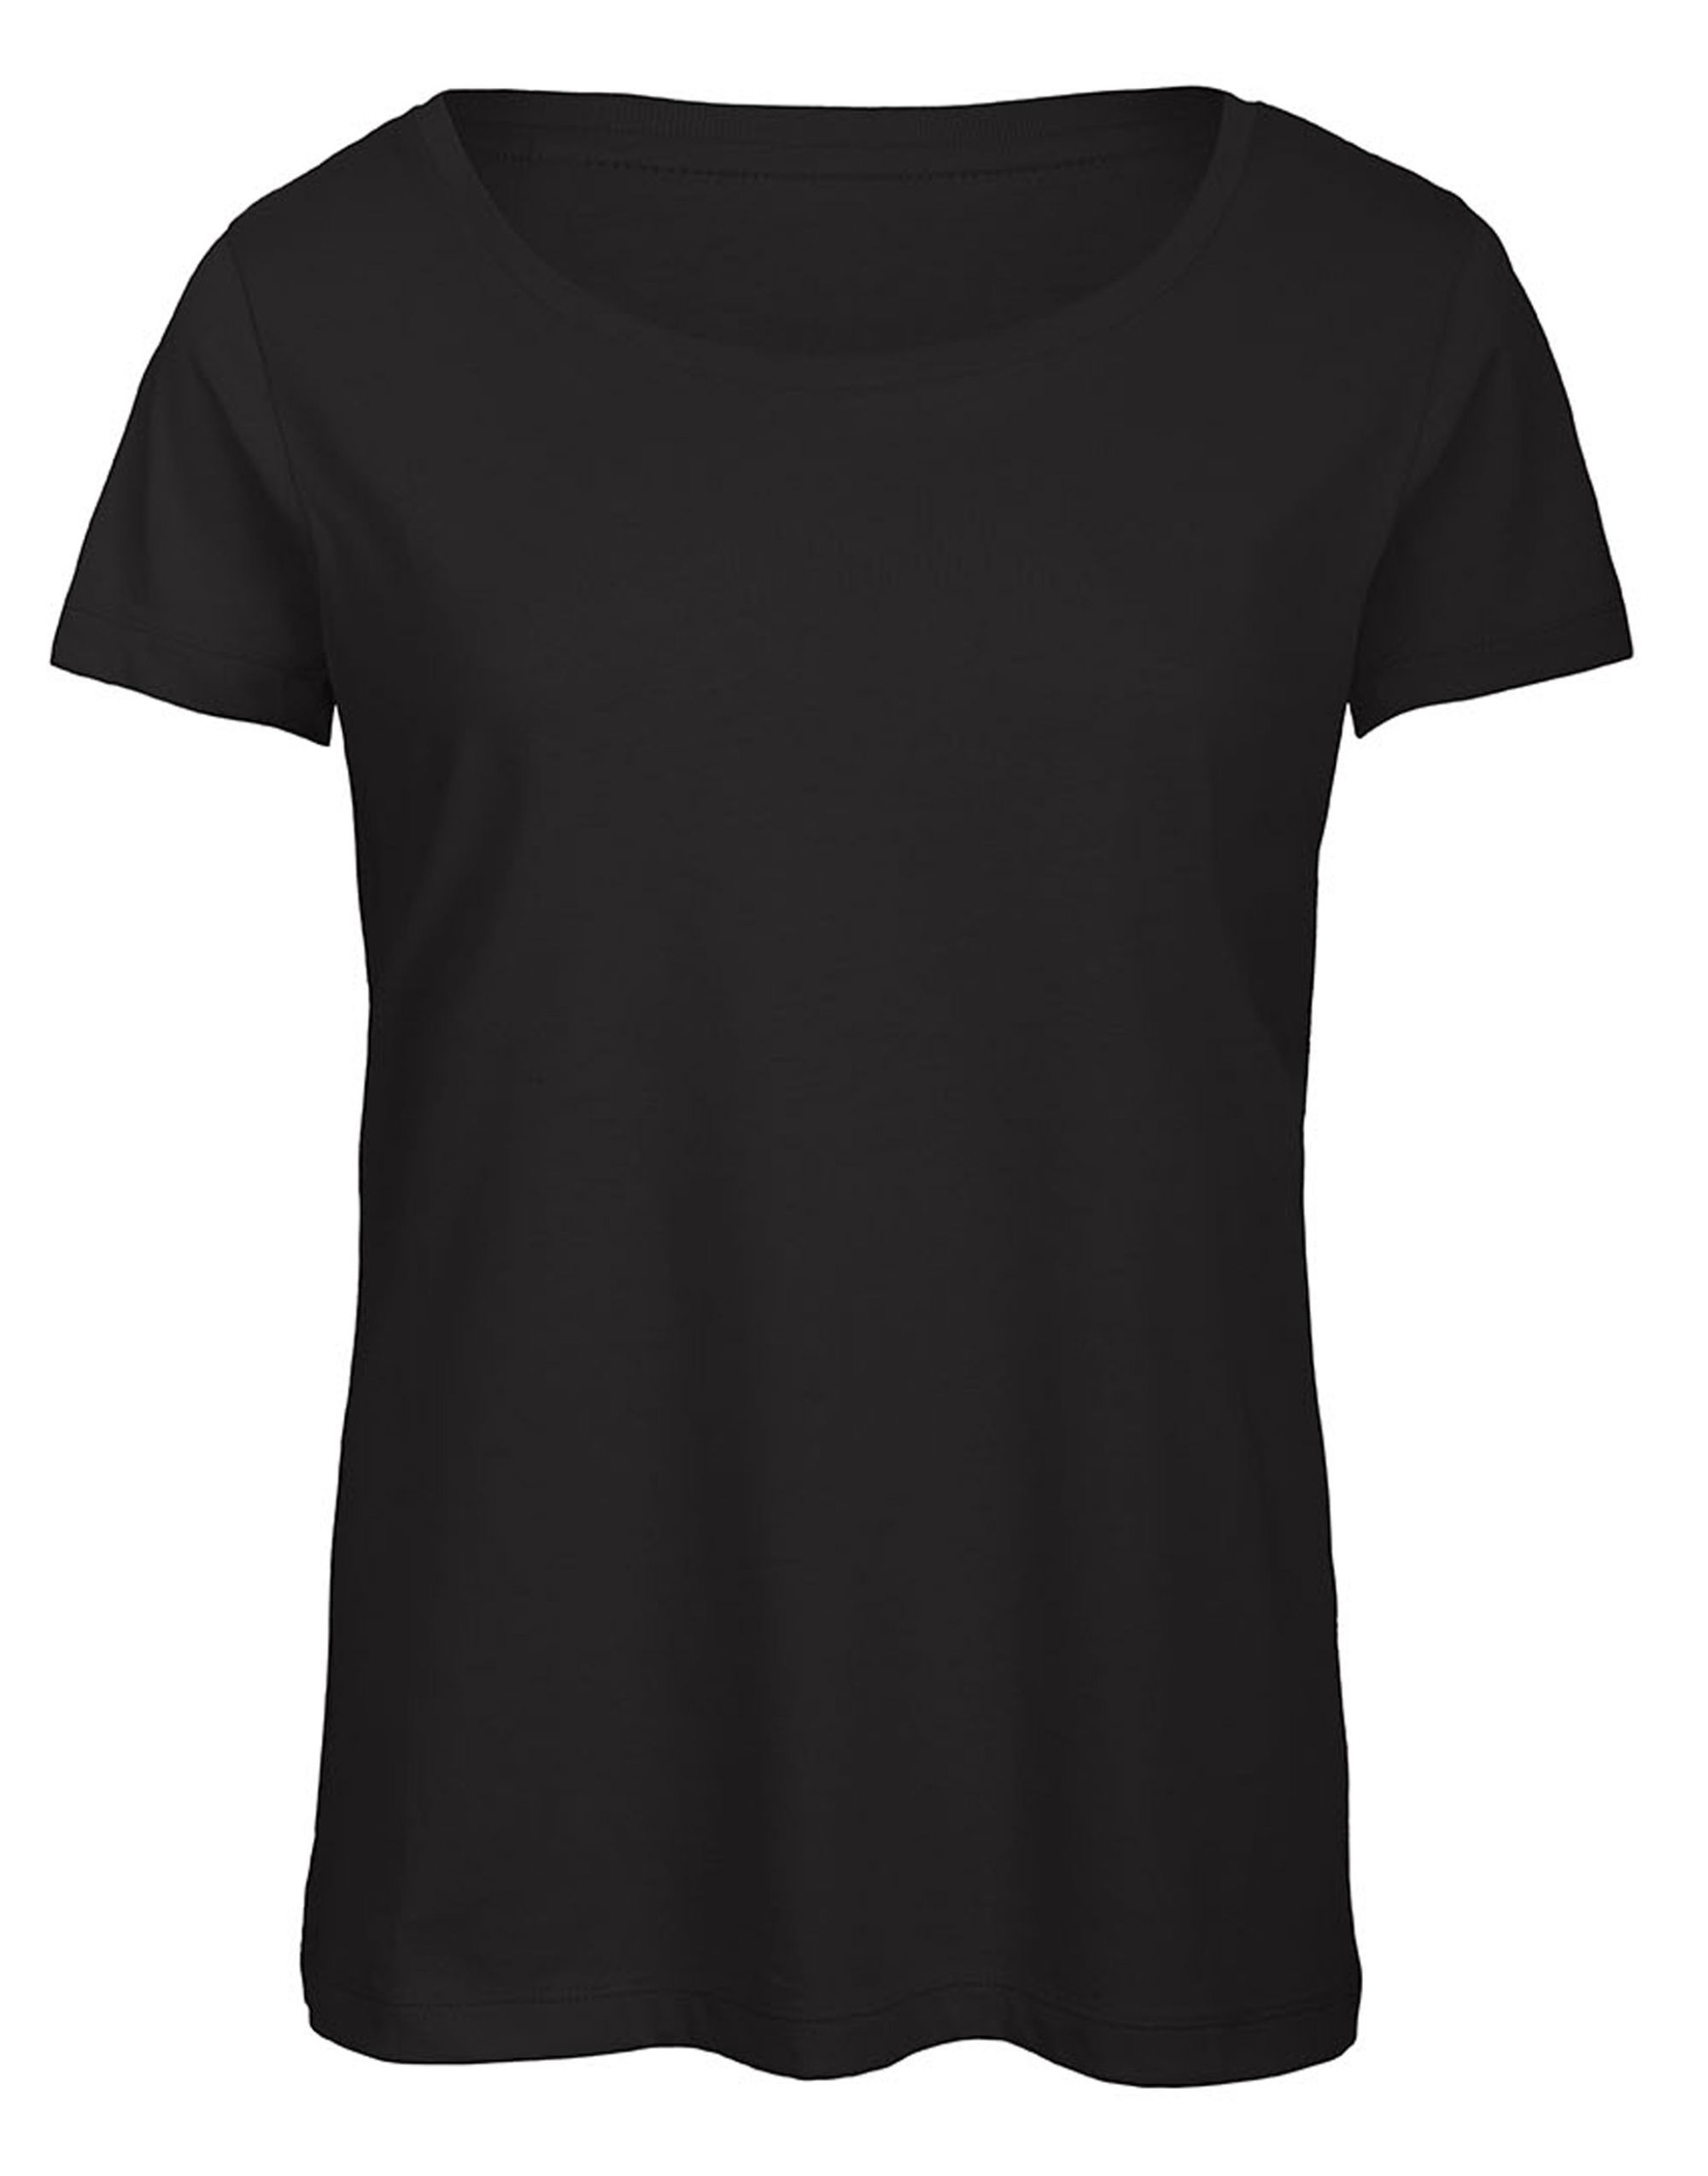 B&c Womens Favourite Triblend Tee